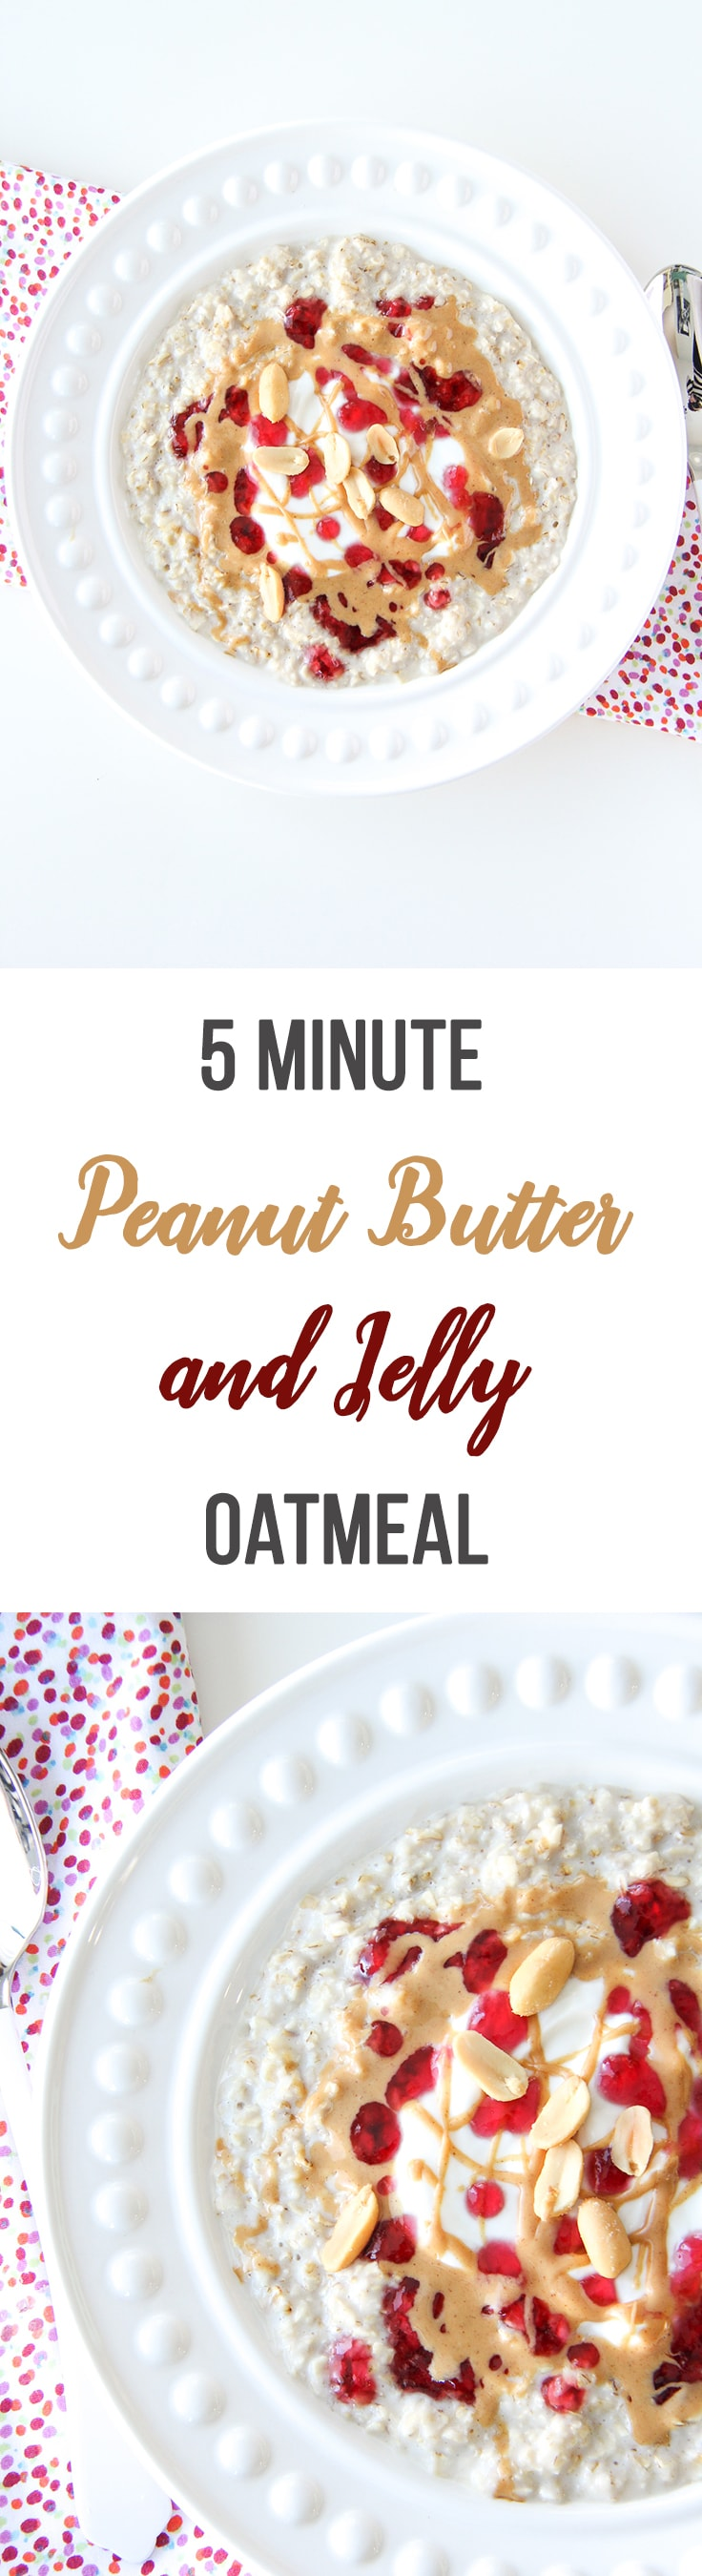 5 Minute Peanut Butter and Jelly Oatmeal